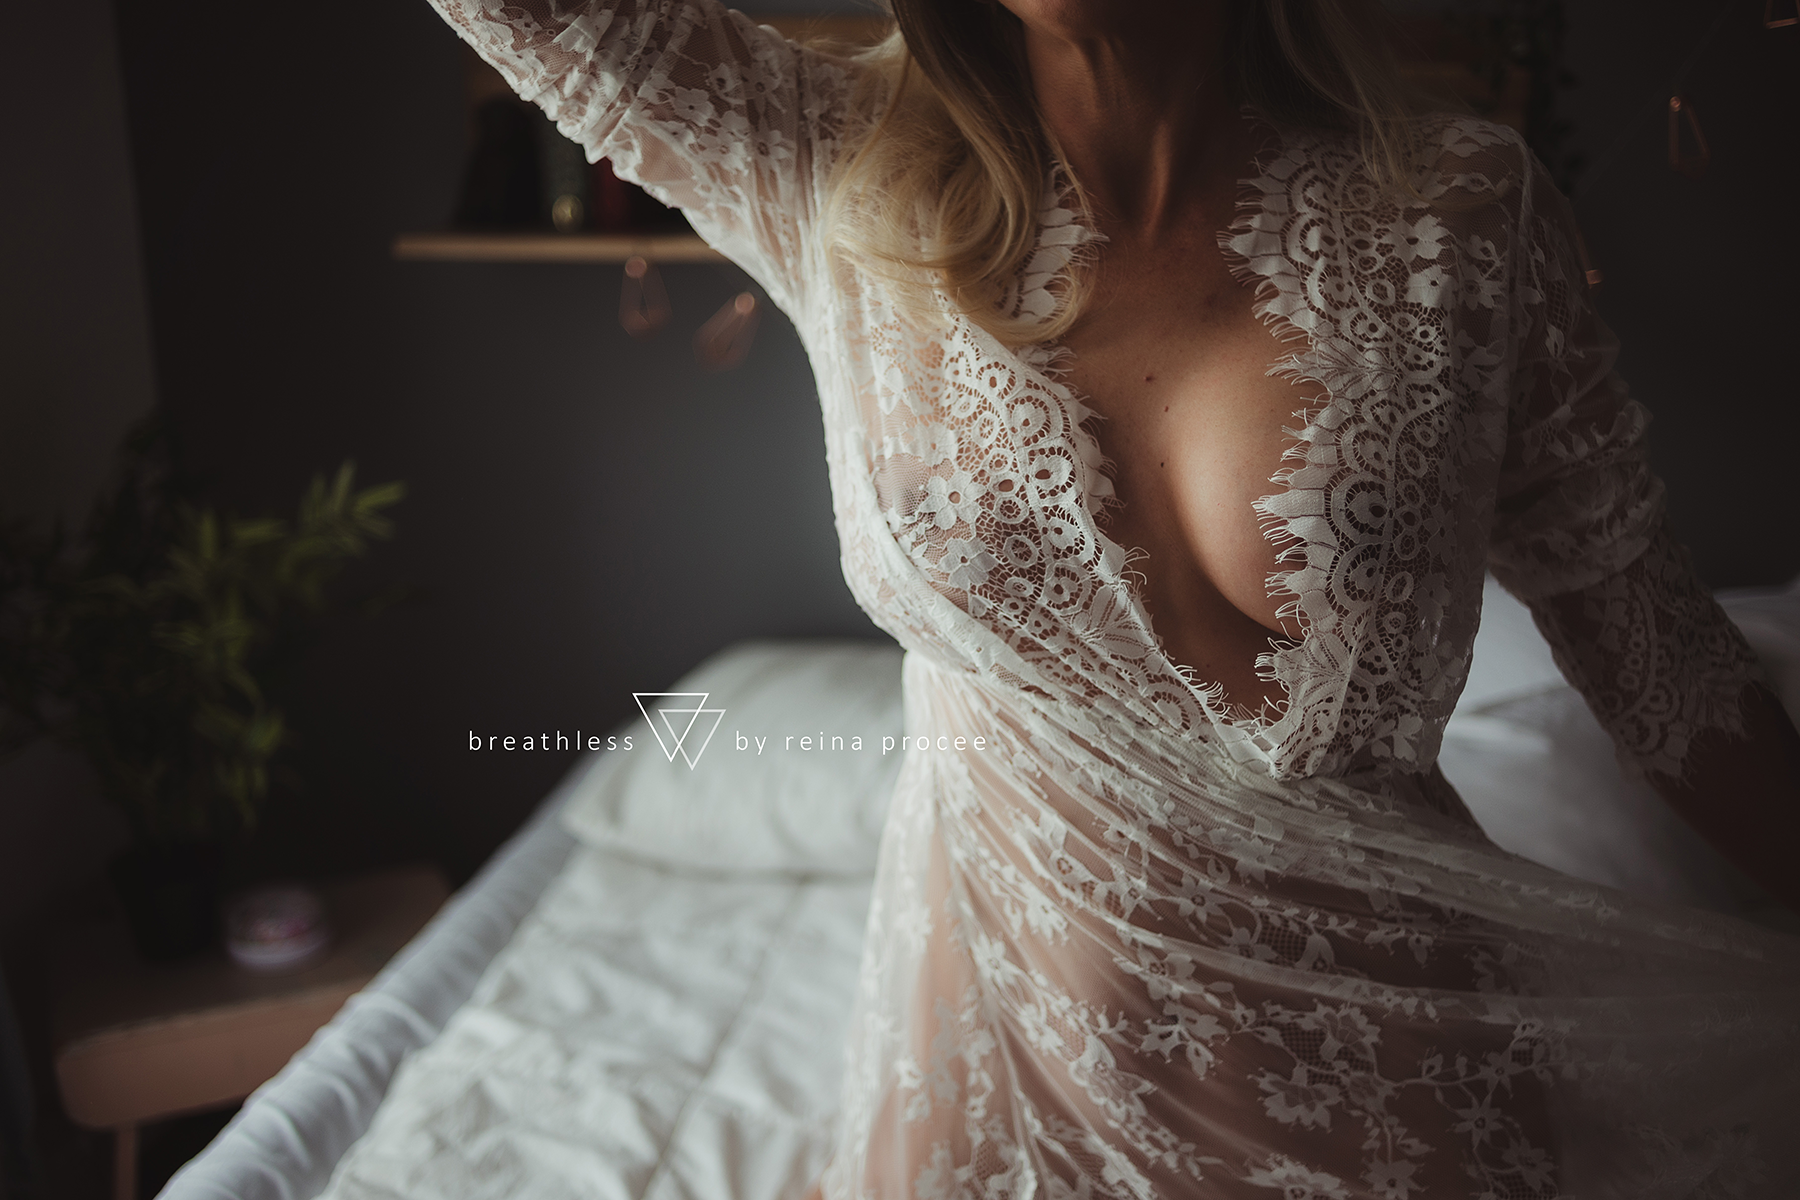 montreal-boudoir-beauty-exotic-empower-women-ladies-comfort-progress-photography-photographer-10.png